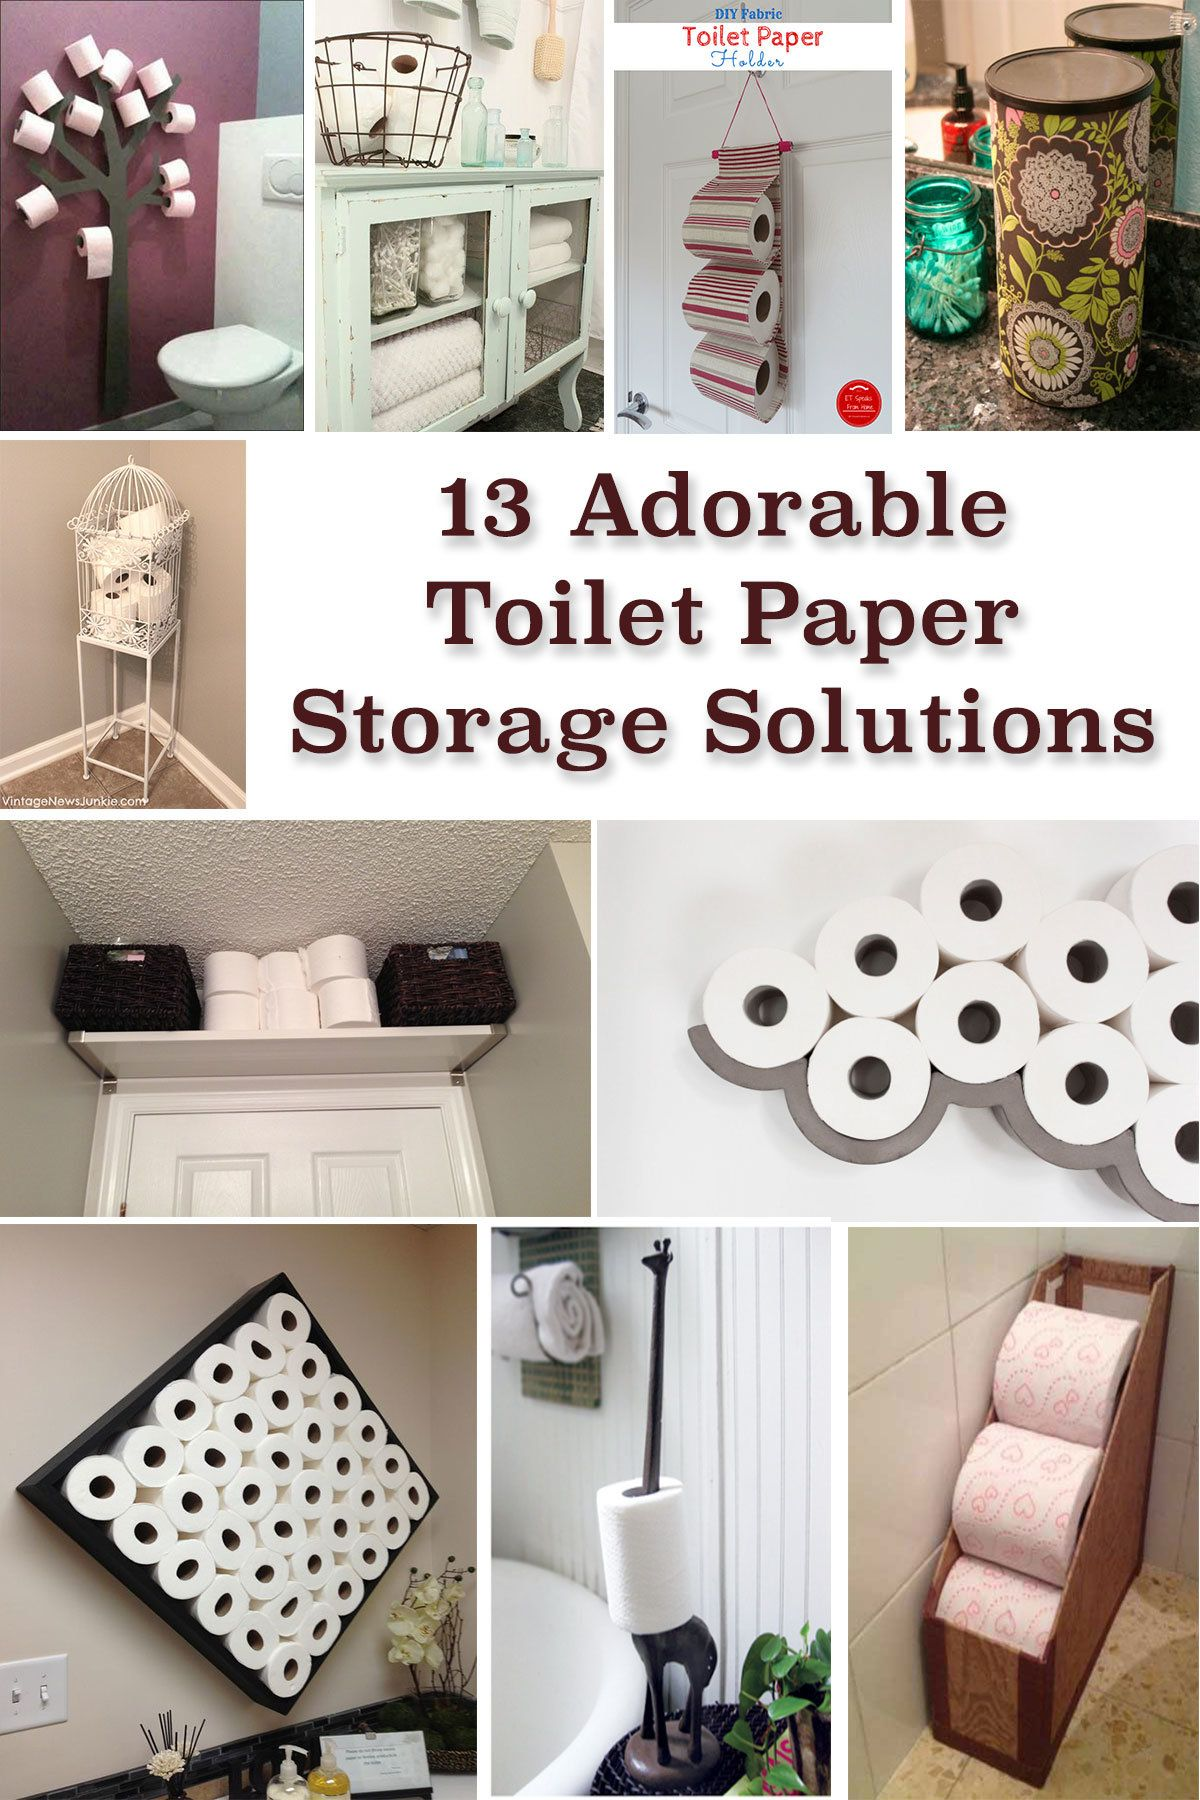 13 Adorable Toilet Paper Storage Solutions Toilet Paper Storage Paper Storage Toilet Paper